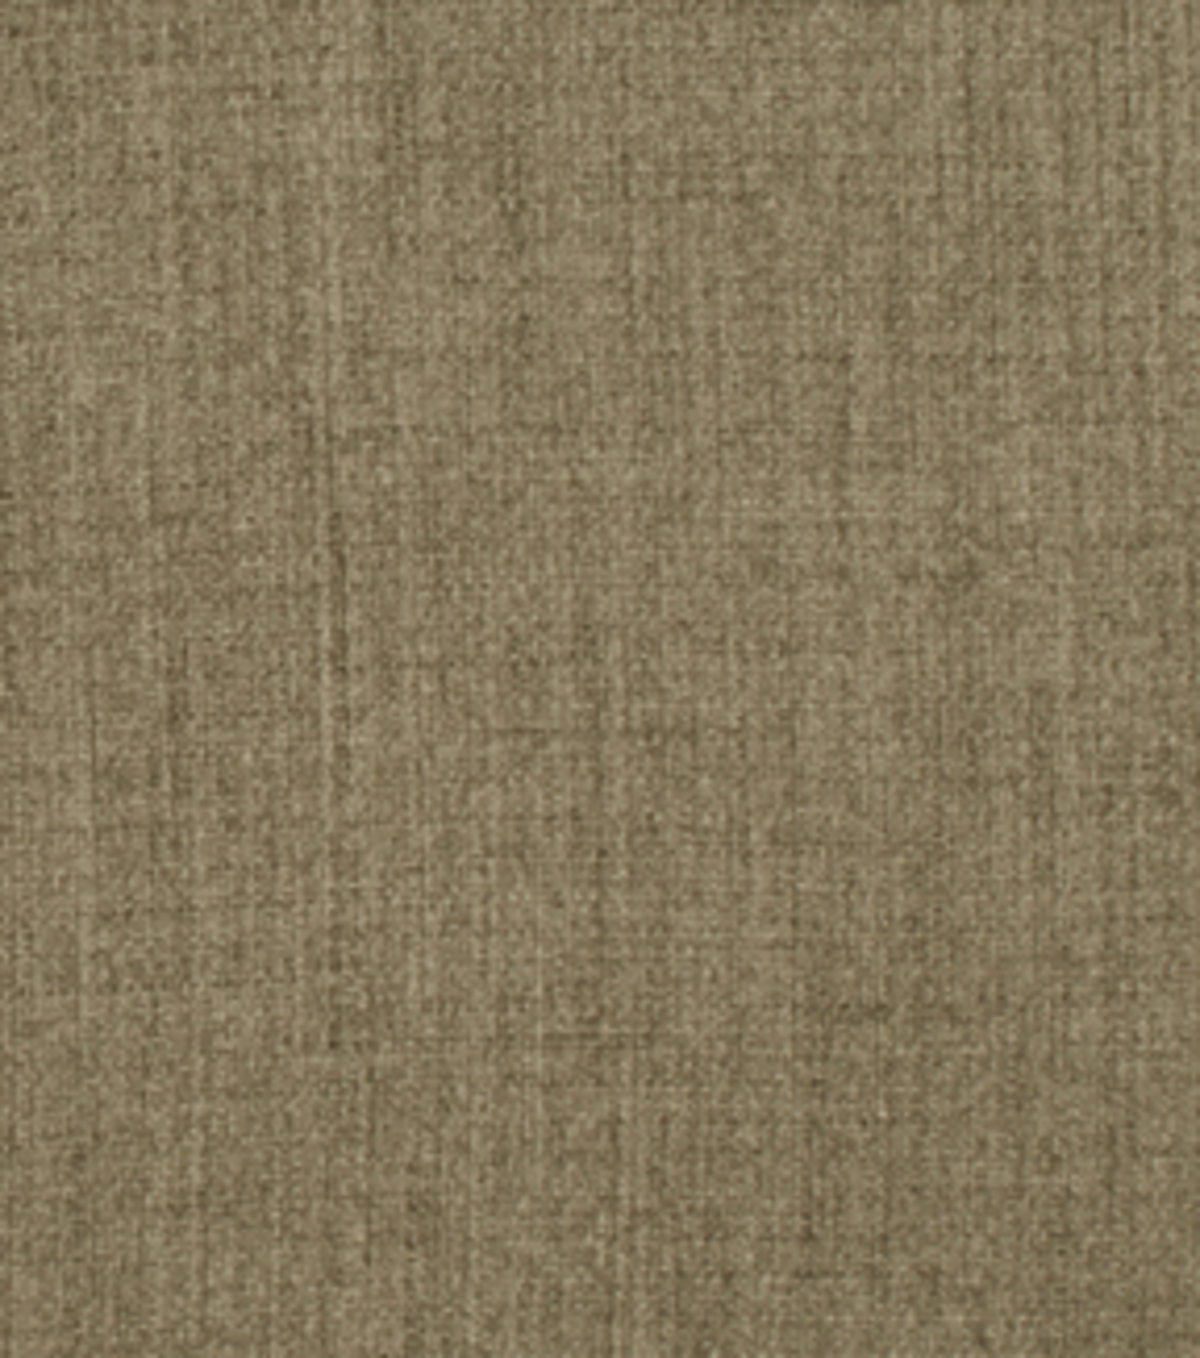 Home Decor 8\u0022x8\u0022 Fabric Swatch-Eaton Square Kramer Bark